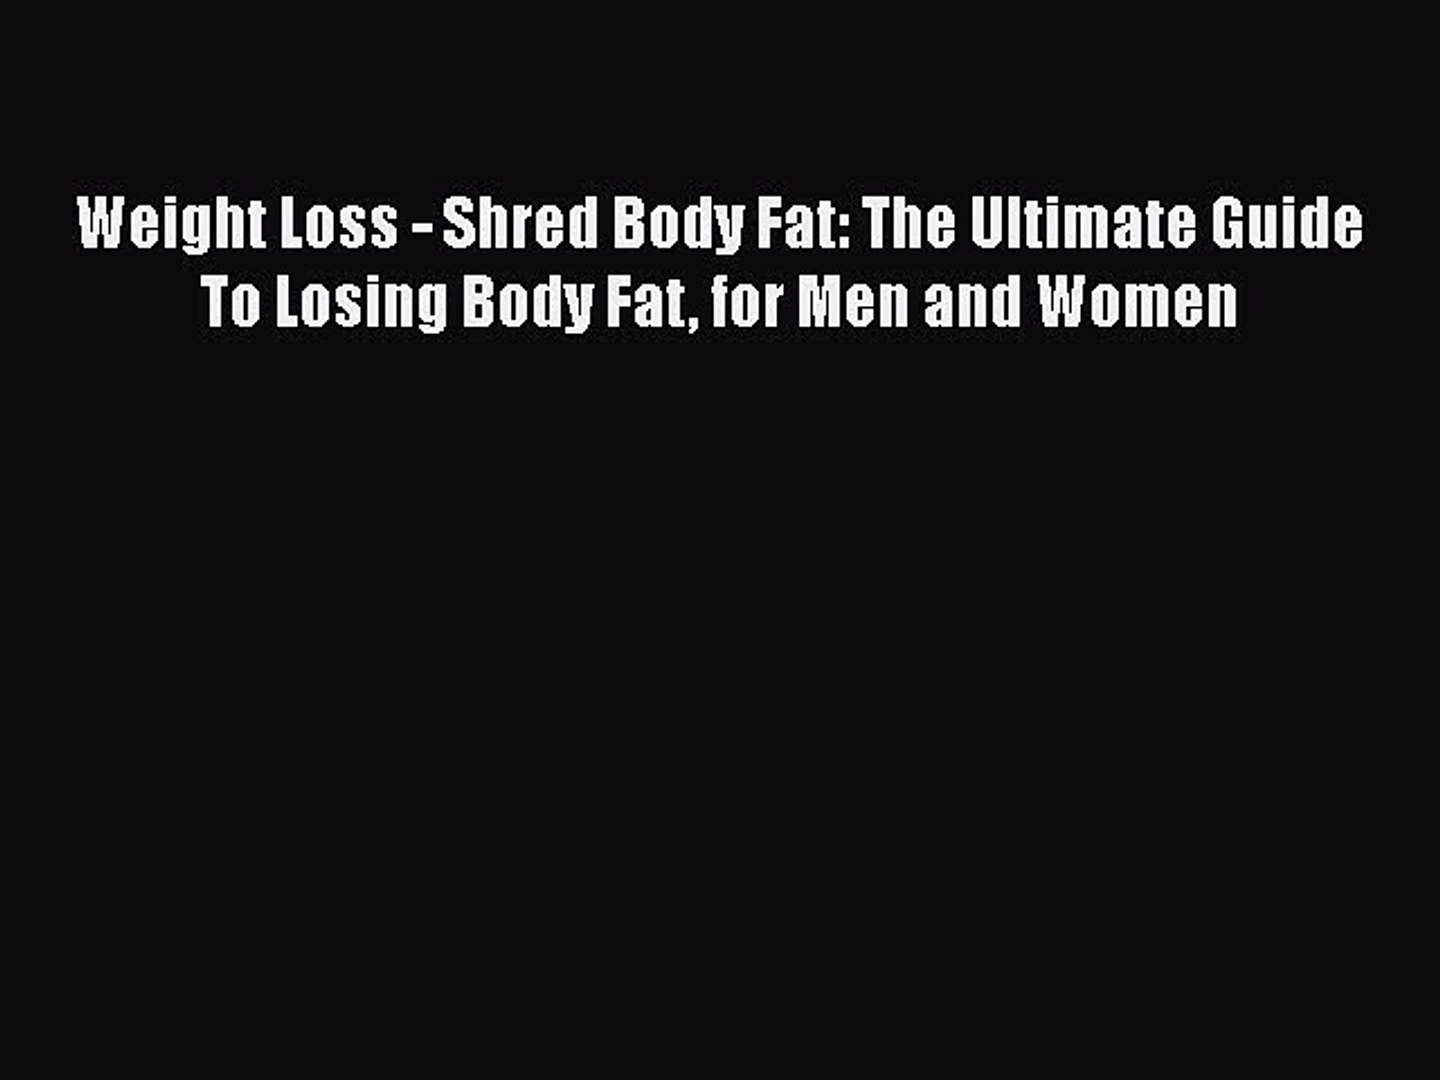 Pdf Weight Loss Shred Body Fat The Ultimate Guide To Losing Body Fat For Men And Women